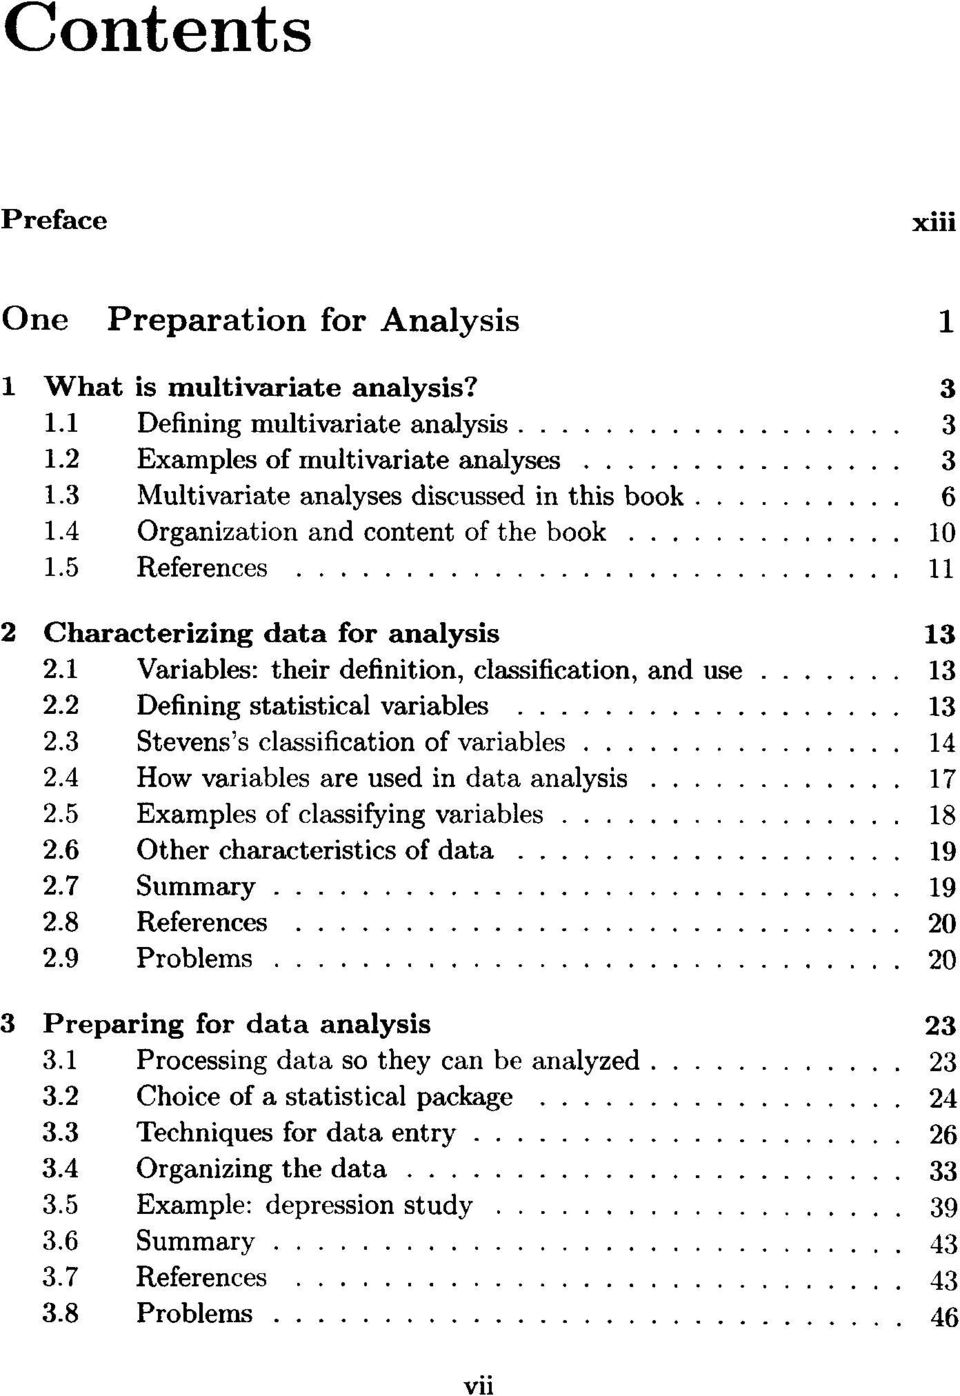 1 Variables: their definition, classification, and use 13 2.2 Defining statistical variables 13 2.3 Stevens's classification of variables 14 2.4 How variables are used in data analysis 17 2.